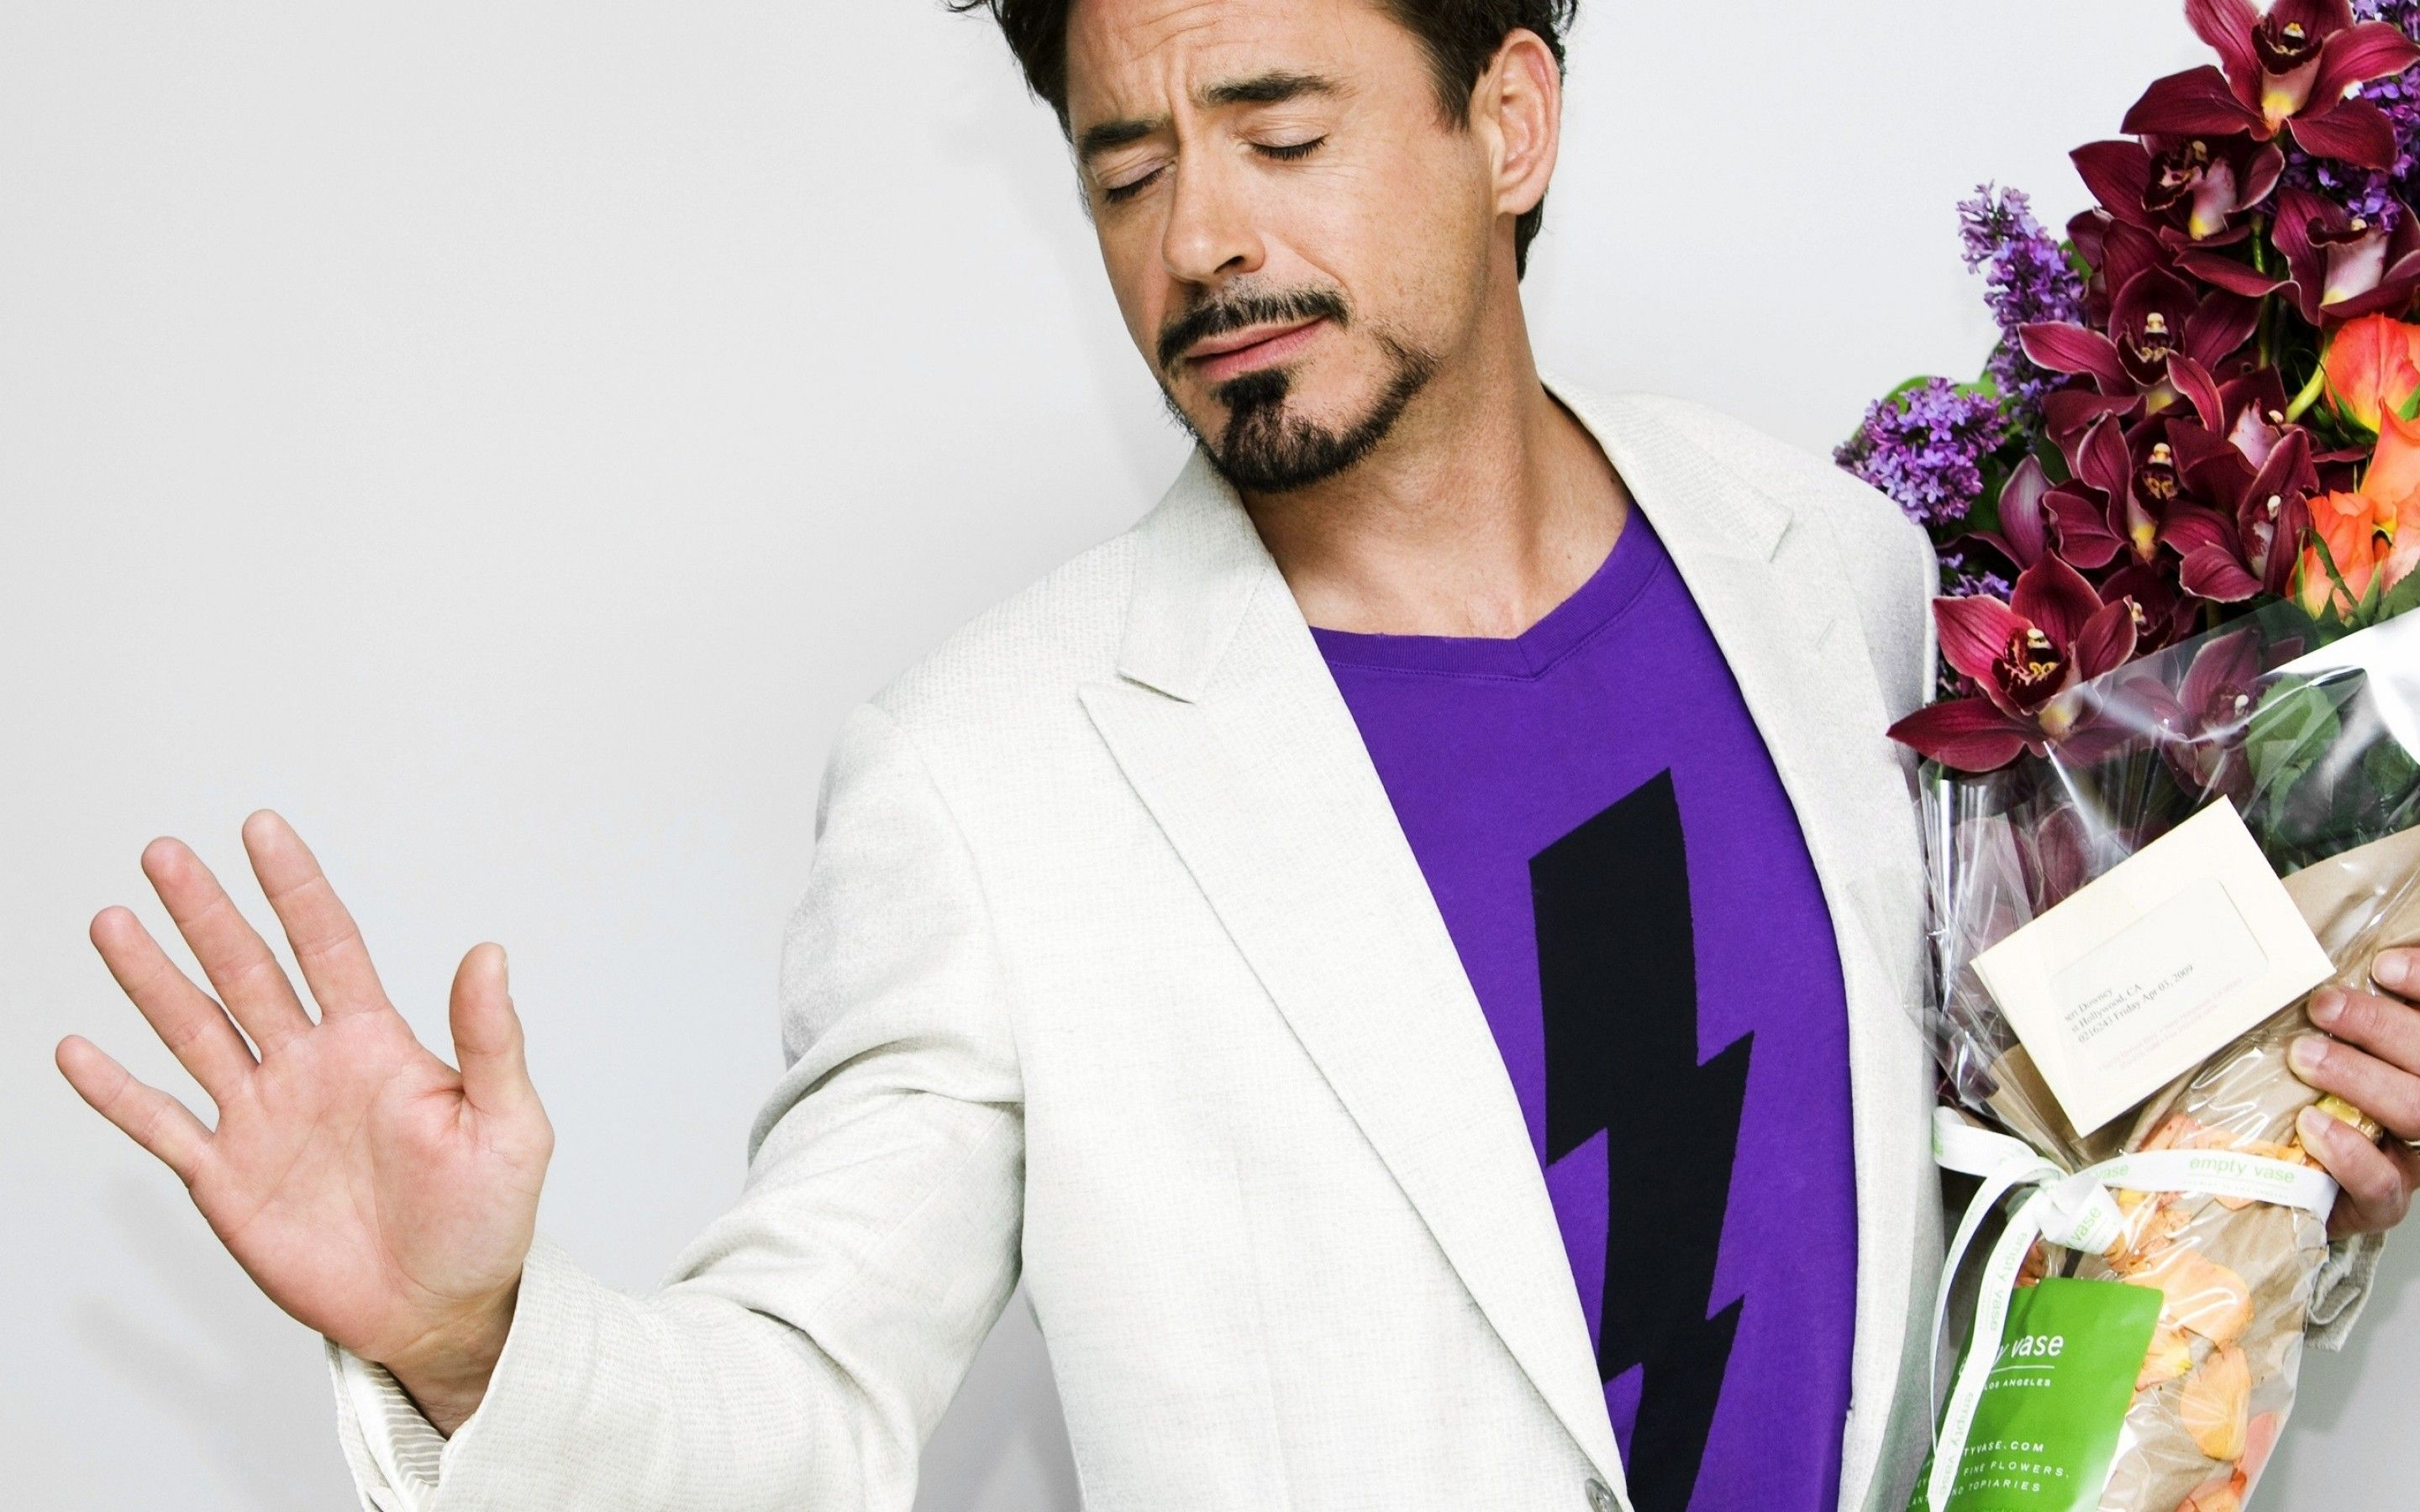 Free hd wallpaper robert downey jr - Robert Downey Jr Wallpaper